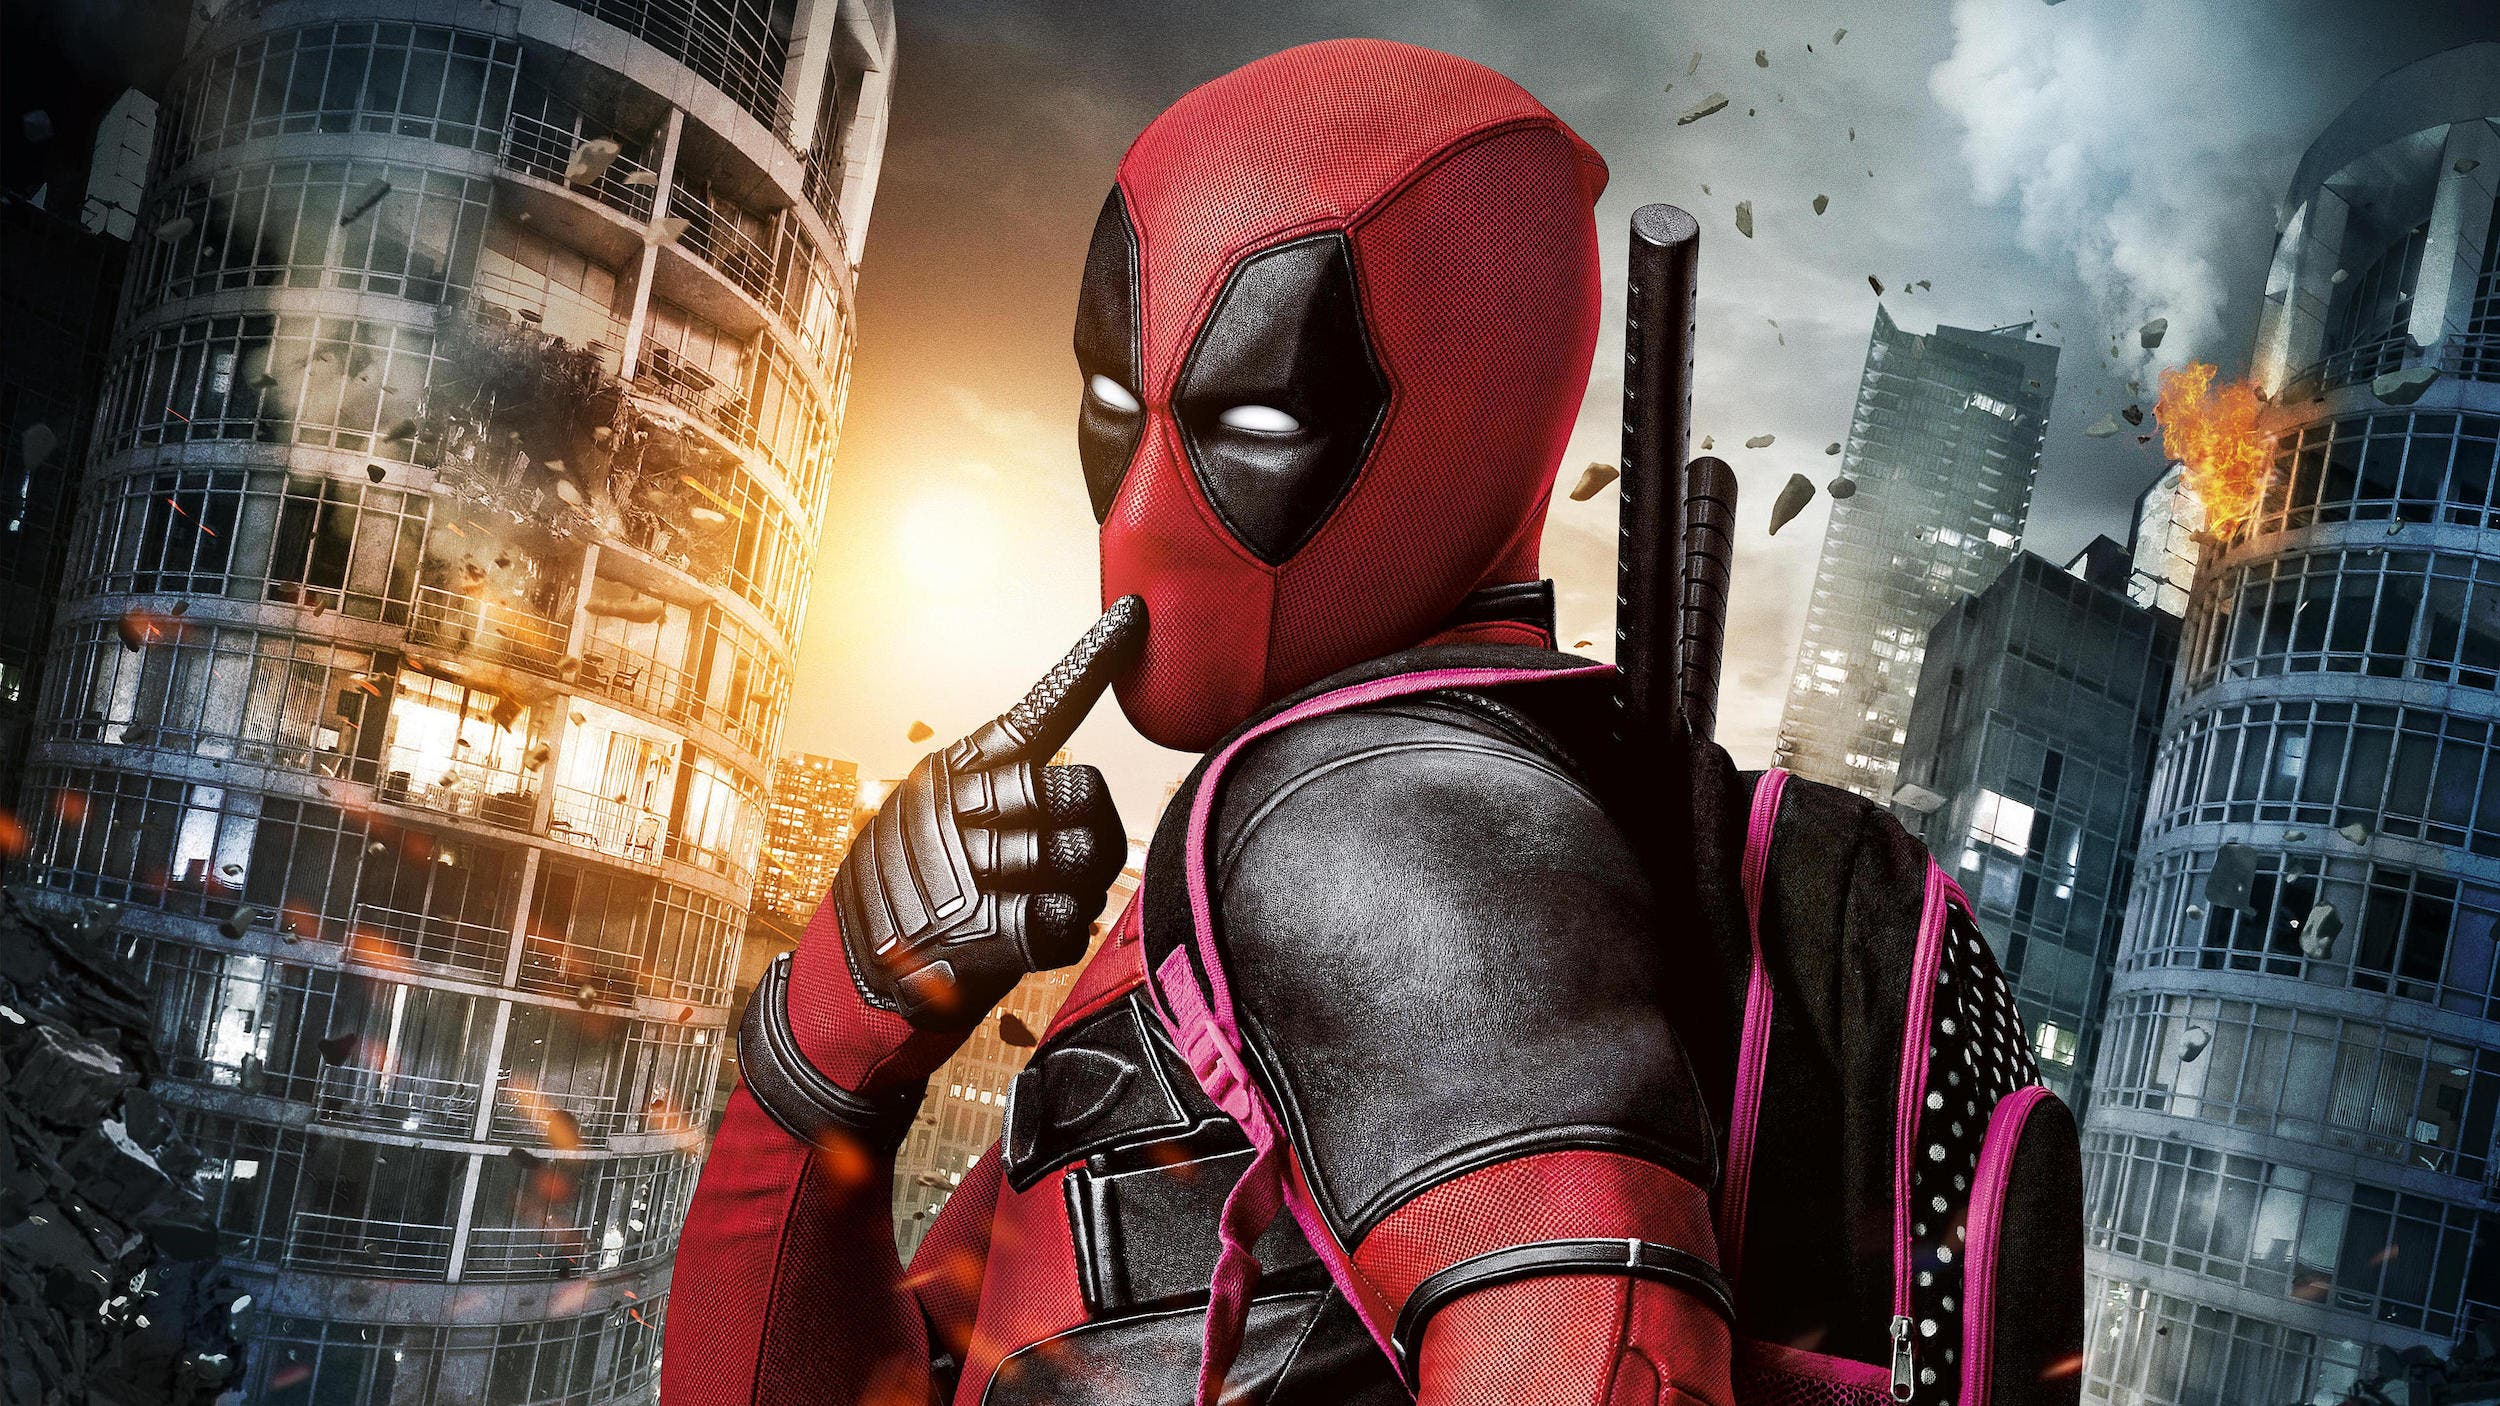 hipertextual-deadpool-haria-su-debut-ucm-doctor-strange-in-the-multiverse-of-madness-2019096114